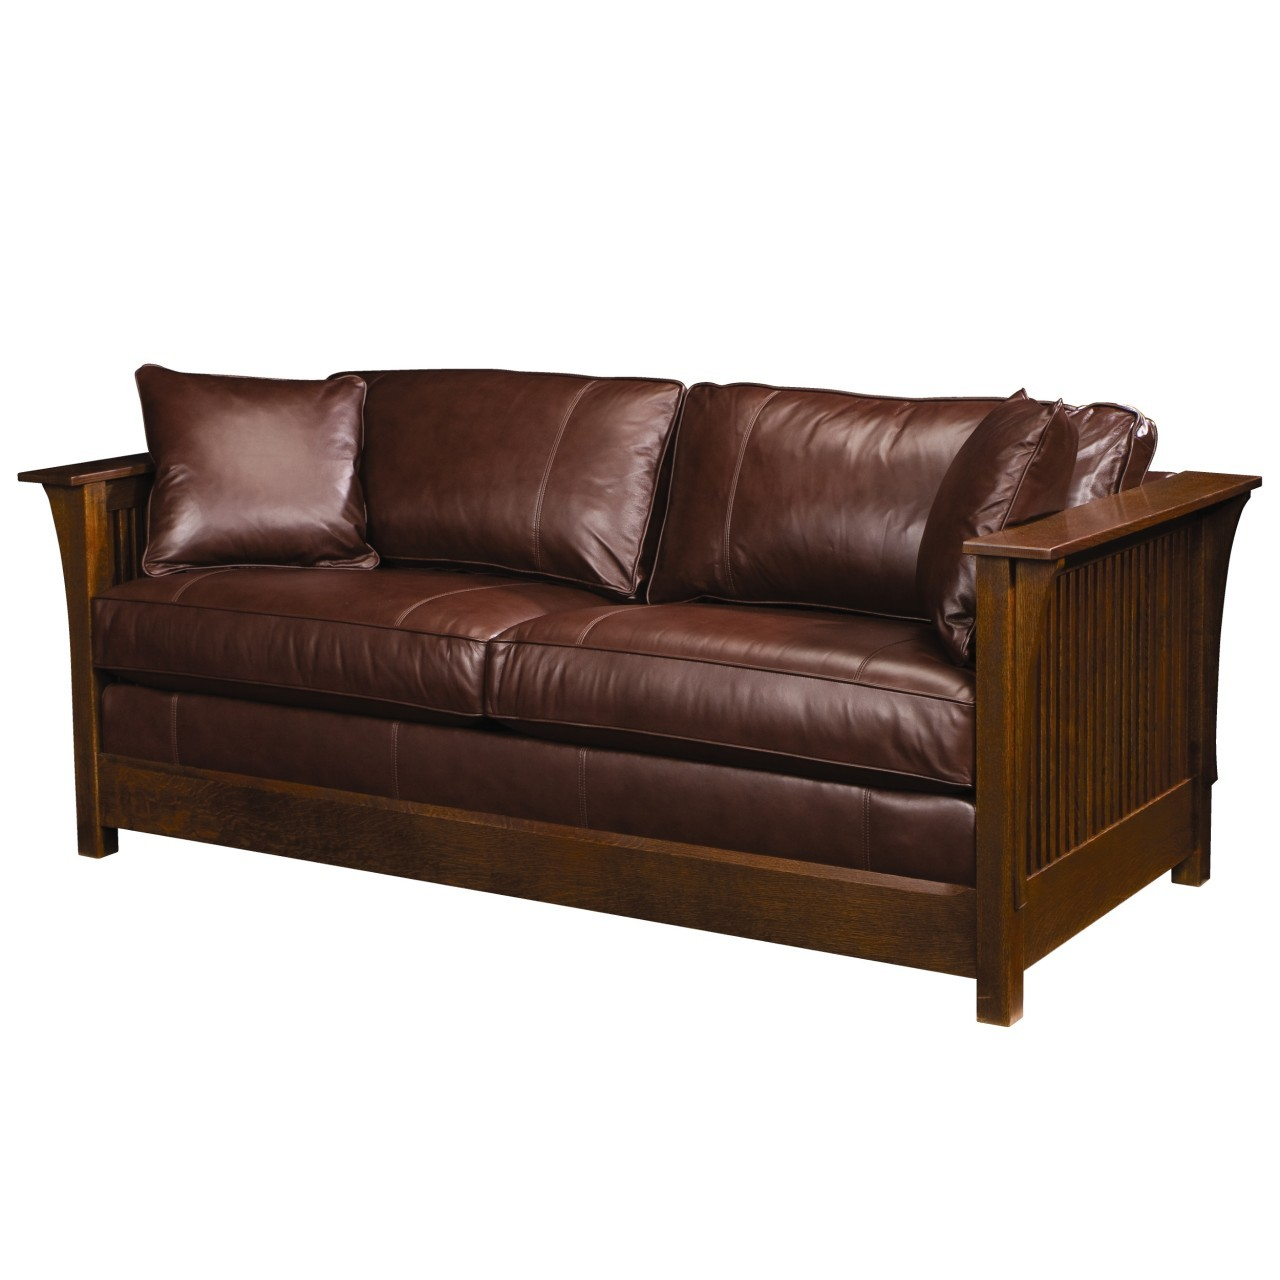 See Also Related To Unique Leather Sleeper Sofas 97 On Living Room Sofa  Inspiration With Leather Sleeper Sofas Images Below